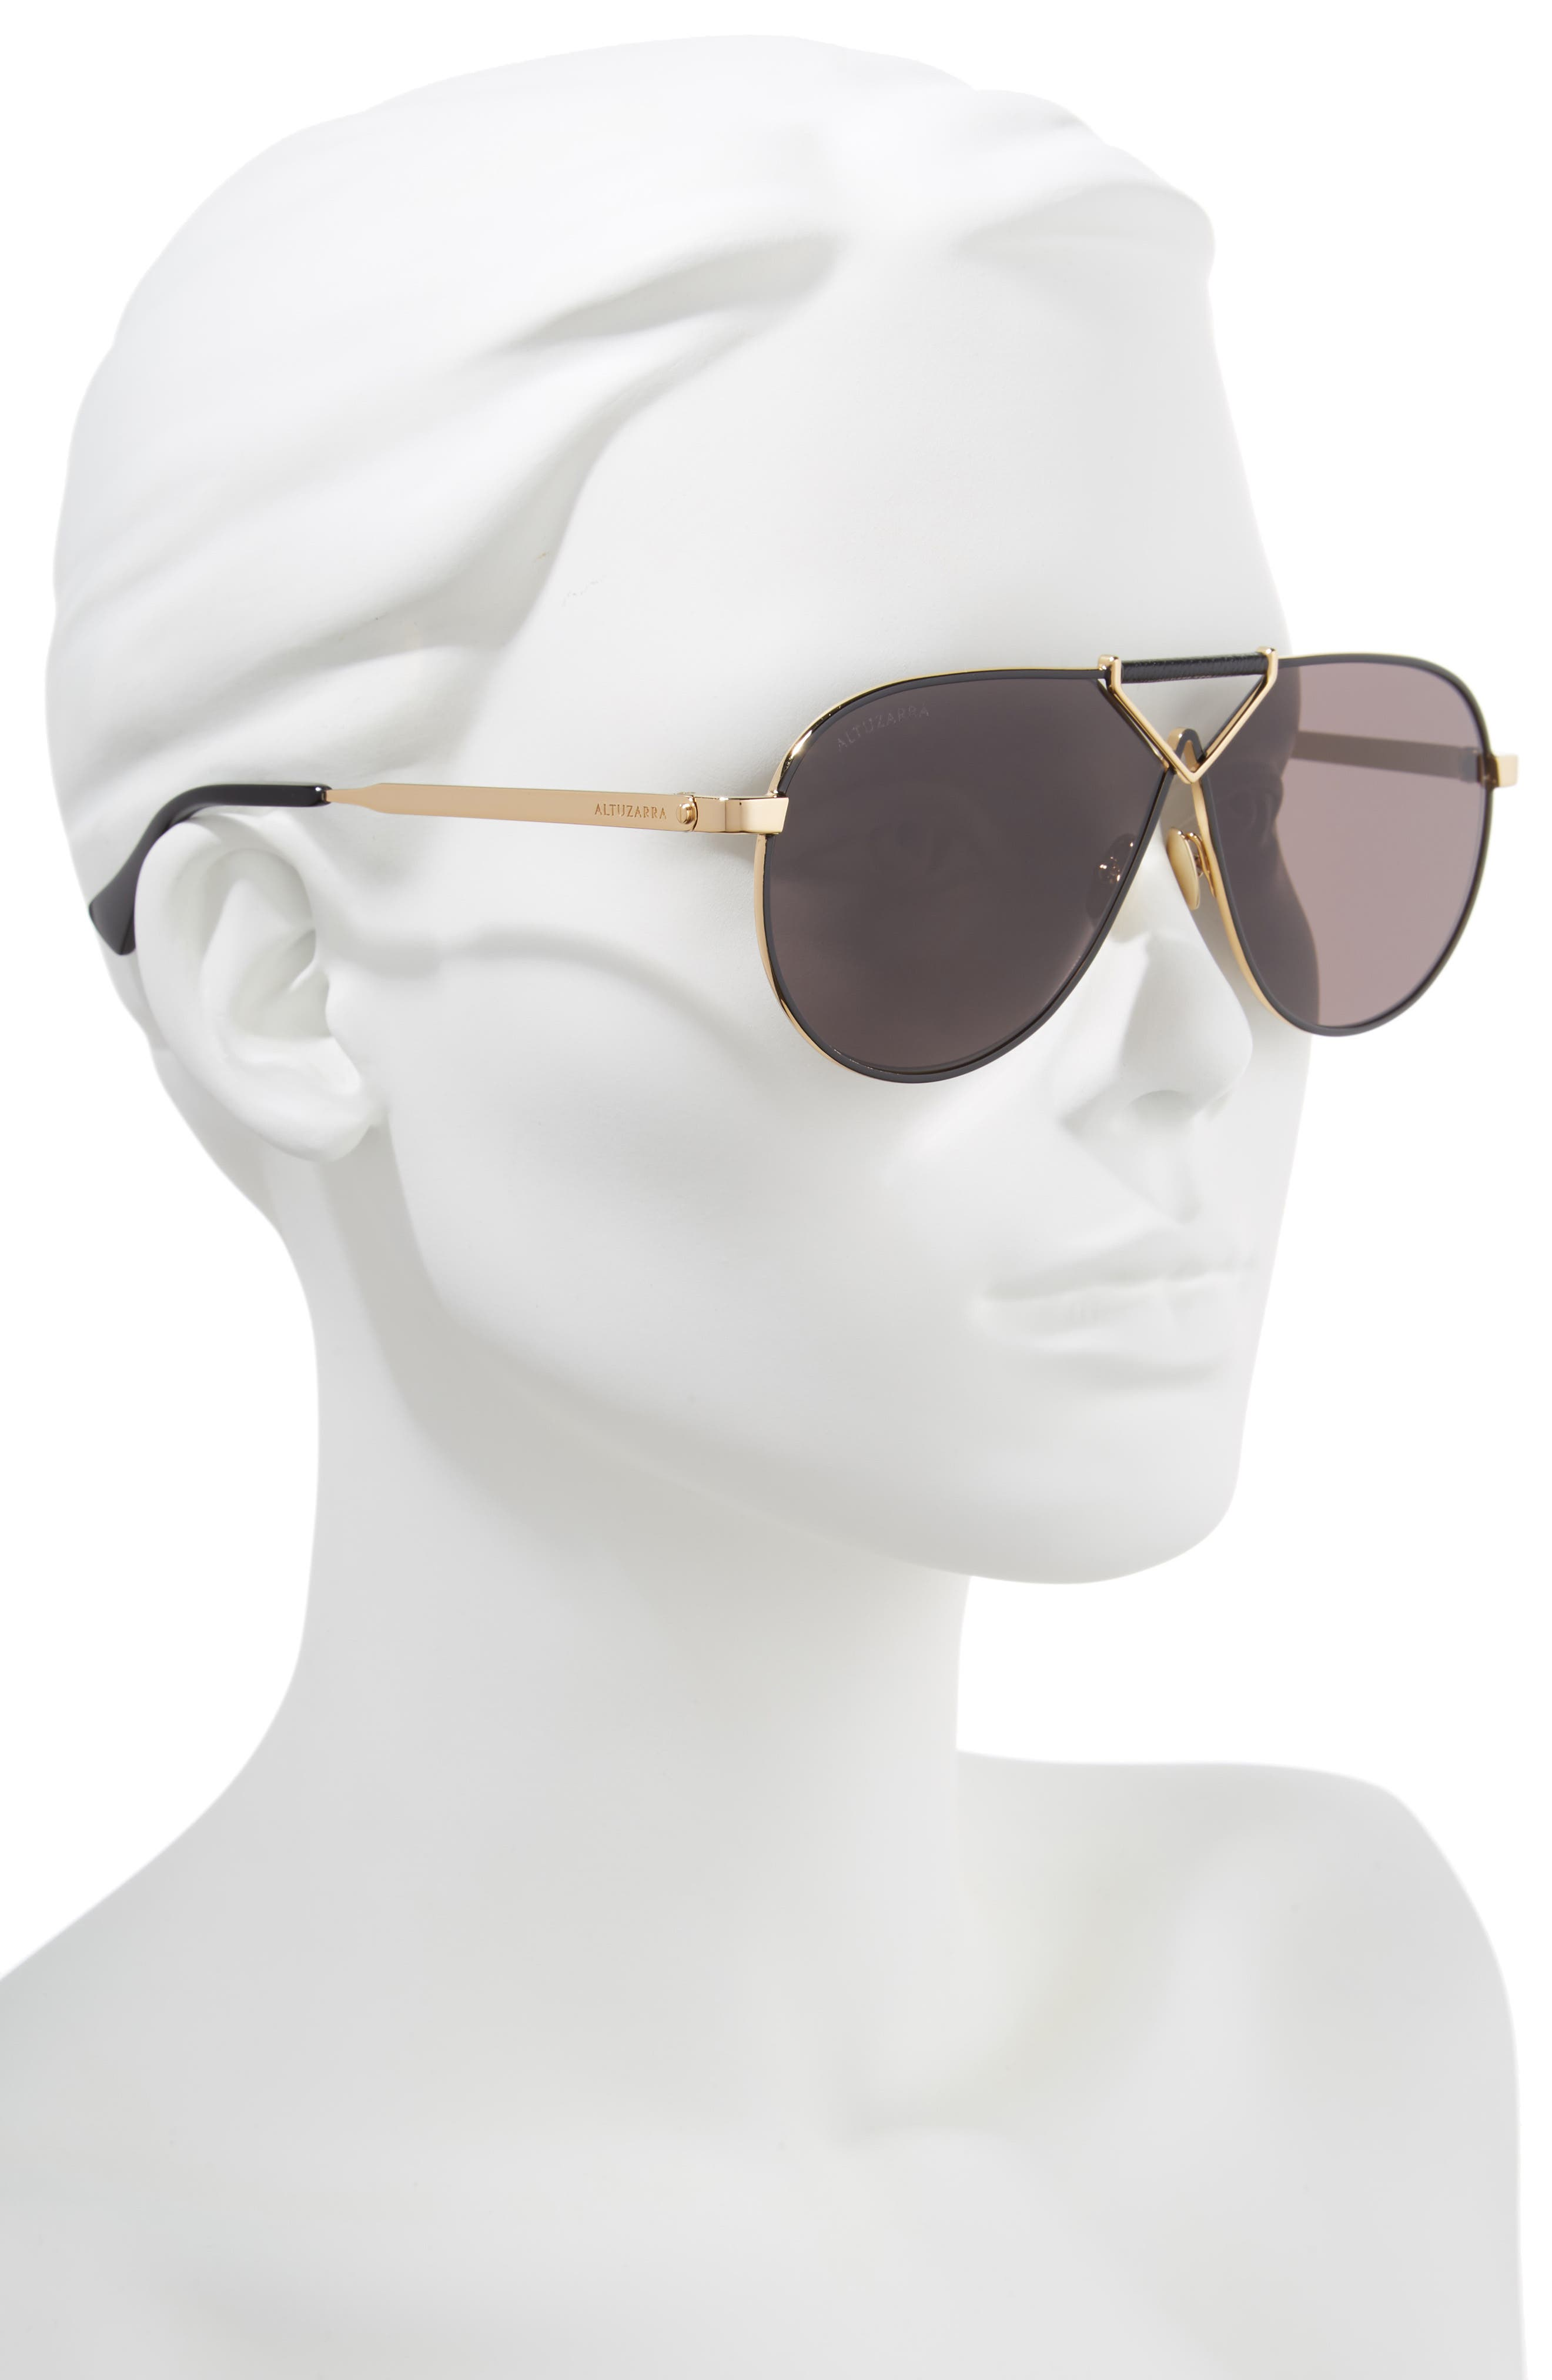 ALTUZARRA,                             64mm Aviator Sunglasses,                             Alternate thumbnail 2, color,                             BLACK/ GOLD